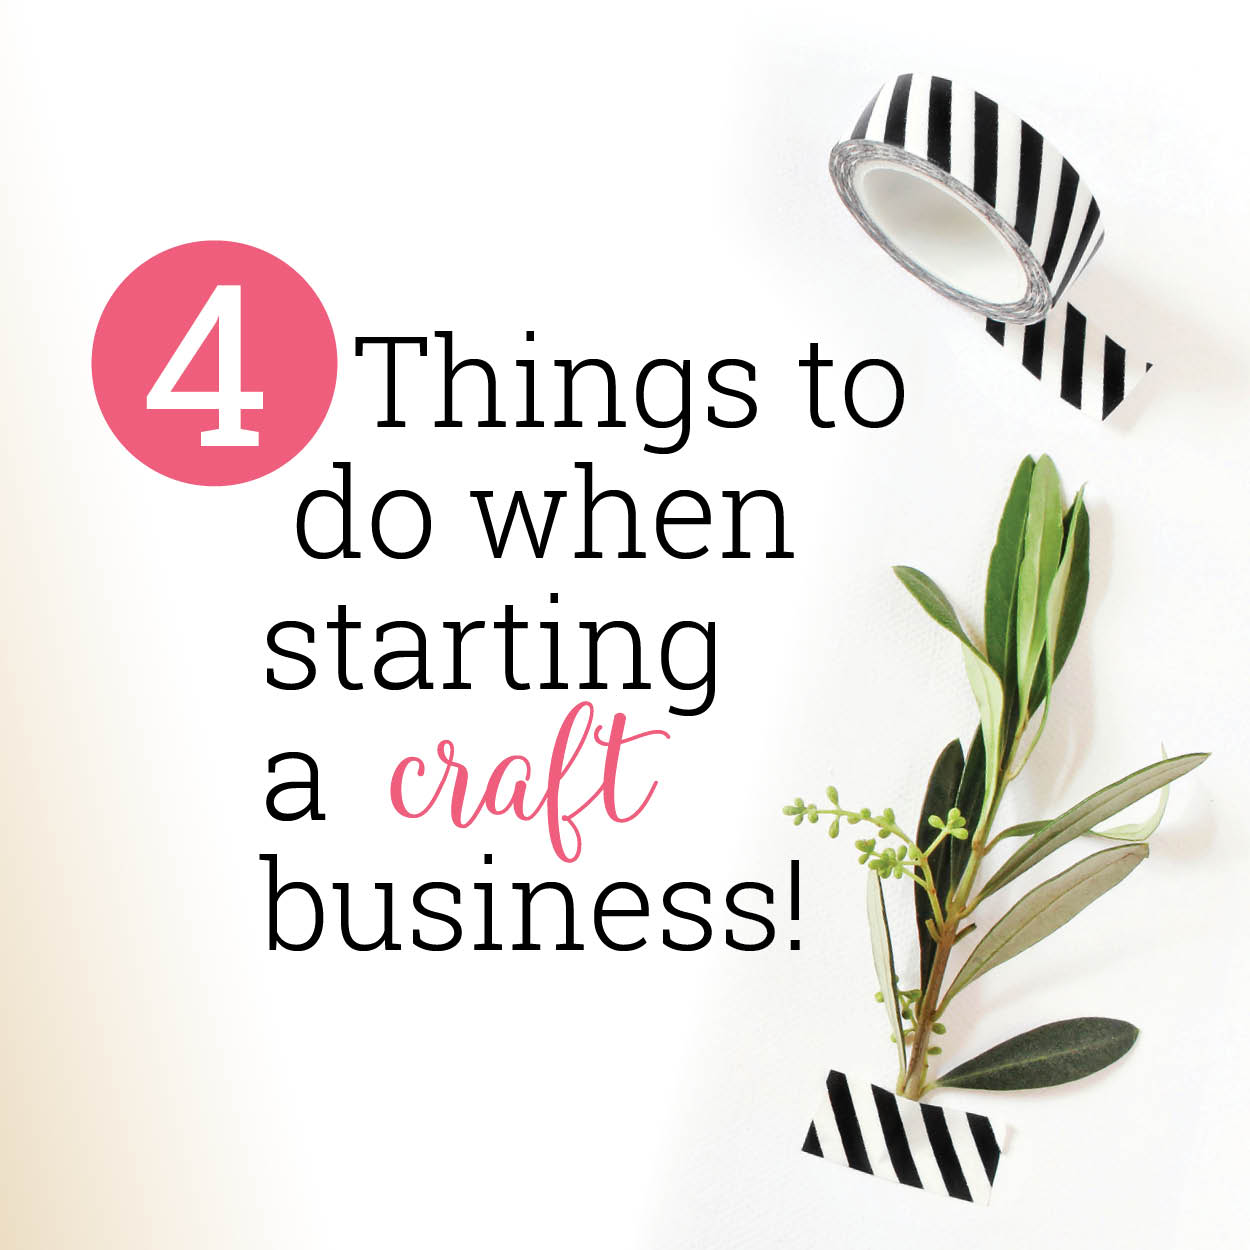 Start a craft business checklist